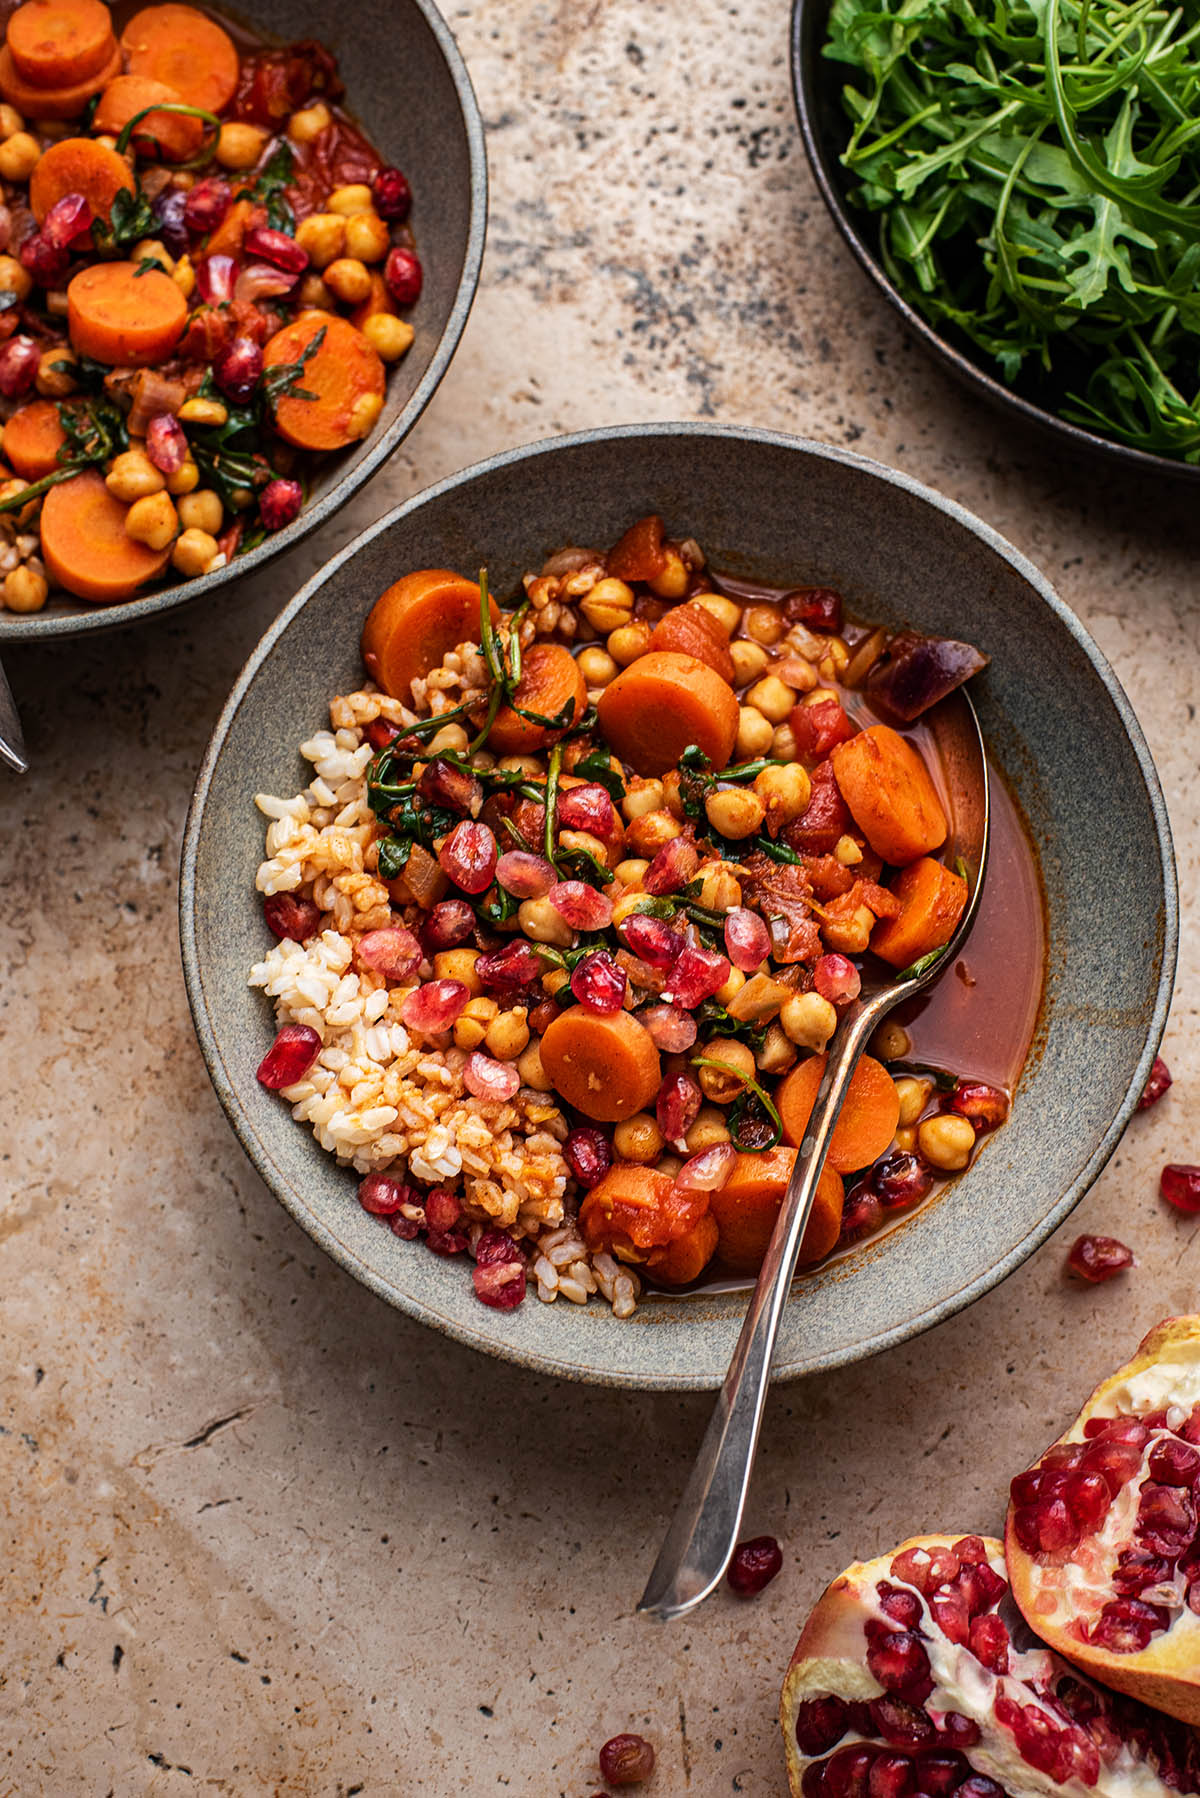 Two bowls of stew, with a bowl of greens and pomegranate.